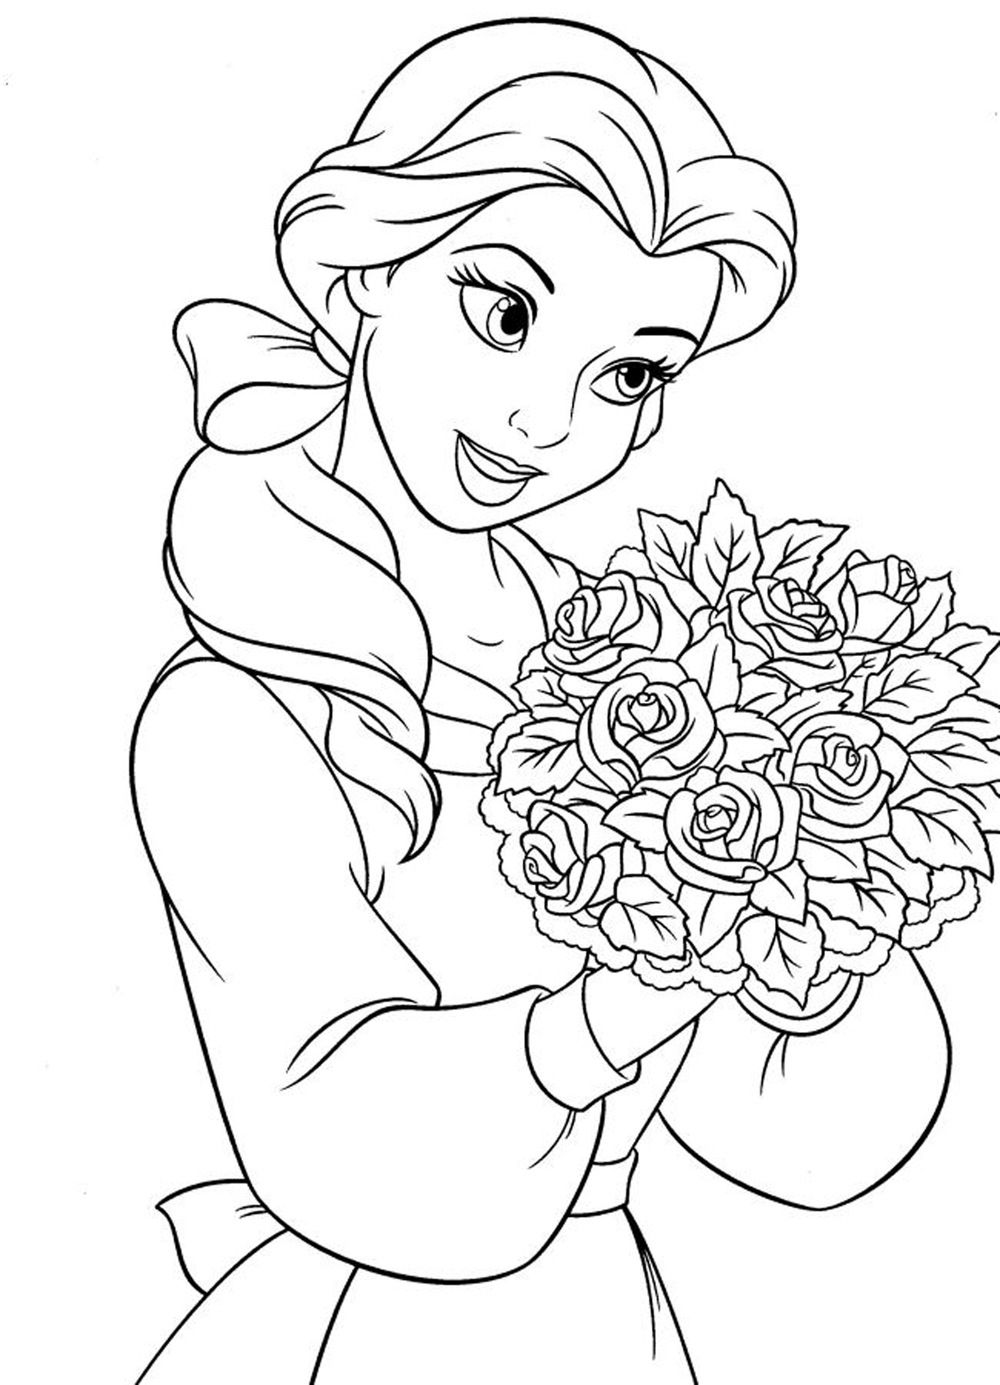 25 Elegant Photo Of Printable Disney Coloring Pages Albanysinsanity Com In 2020 Belle Coloring Pages Rose Coloring Pages Disney Princess Coloring Pages